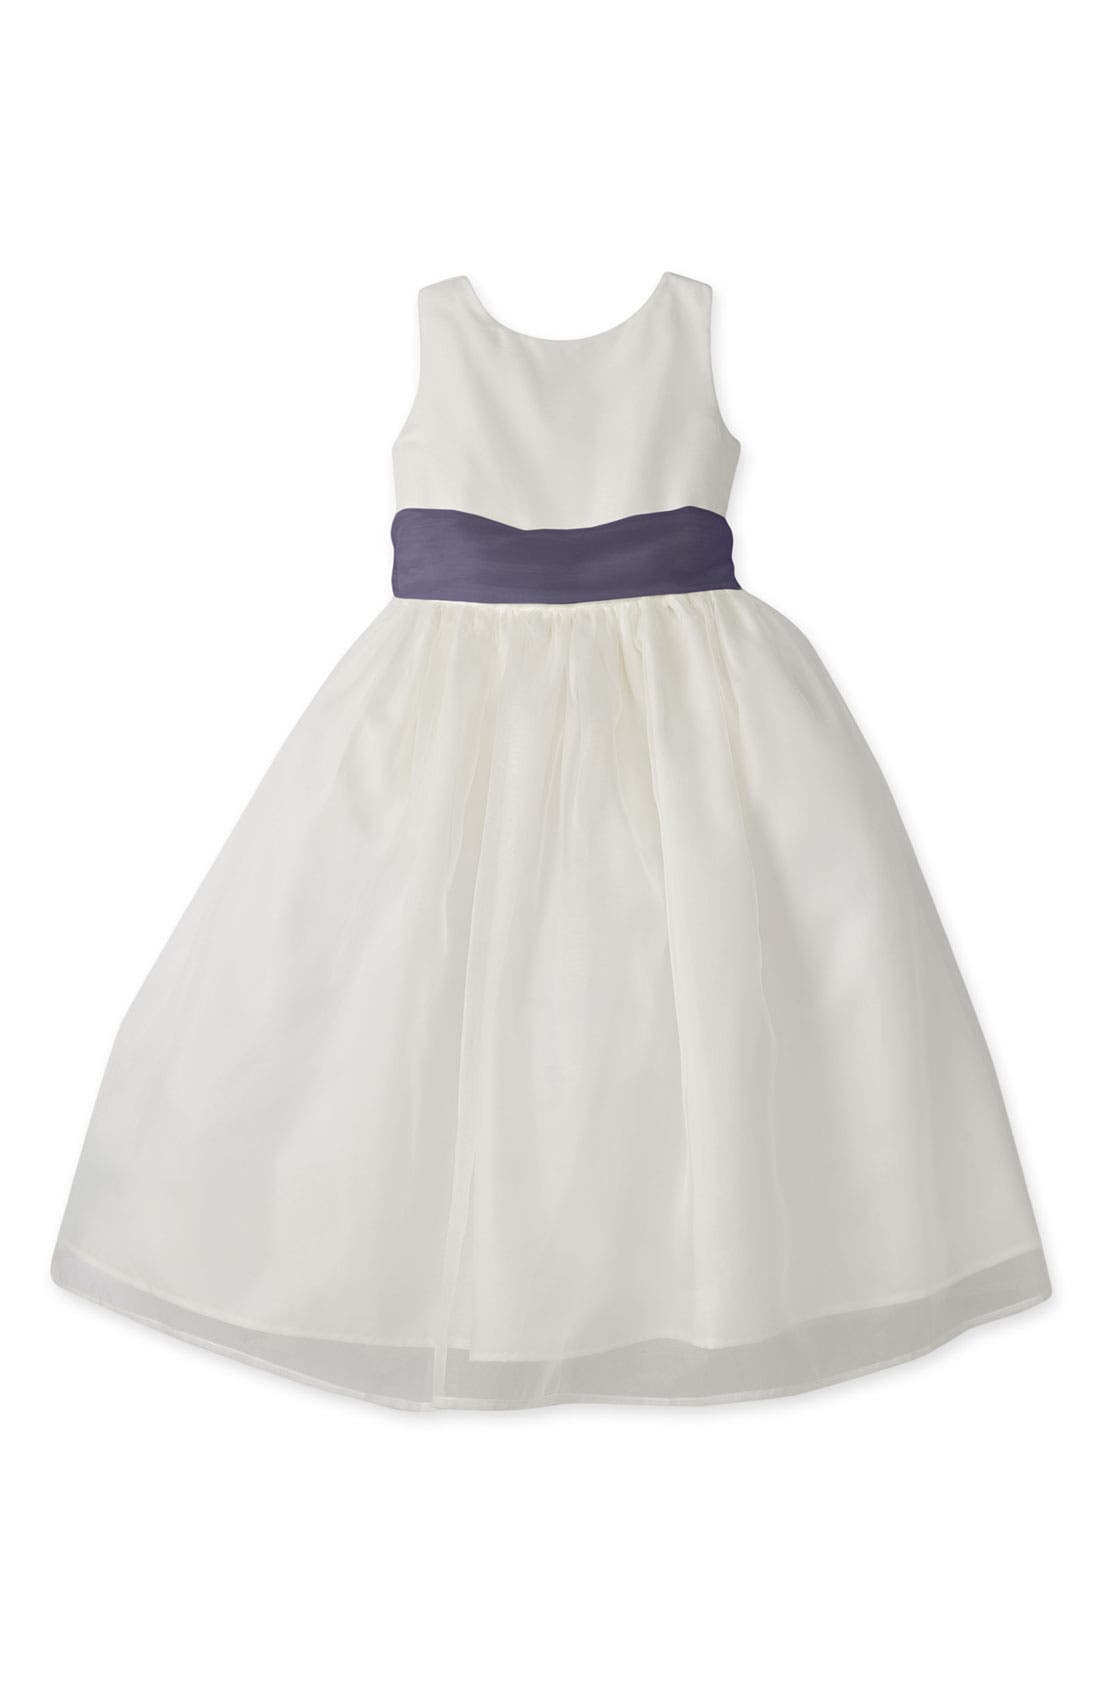 b5203871a2 Baby Girls  Clothing  Dresses